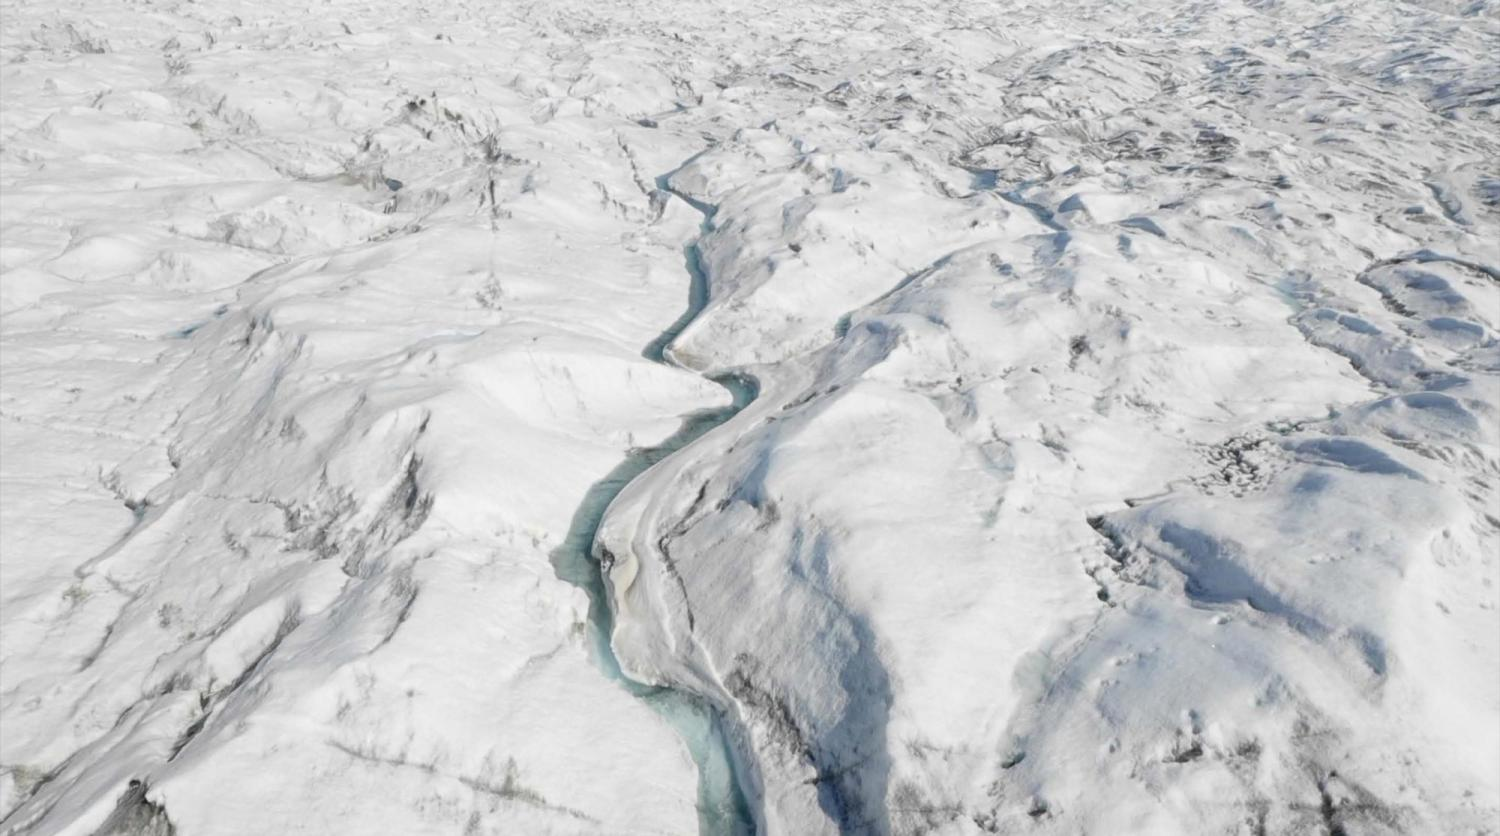 Aerial view of Greenland's ice fjords.